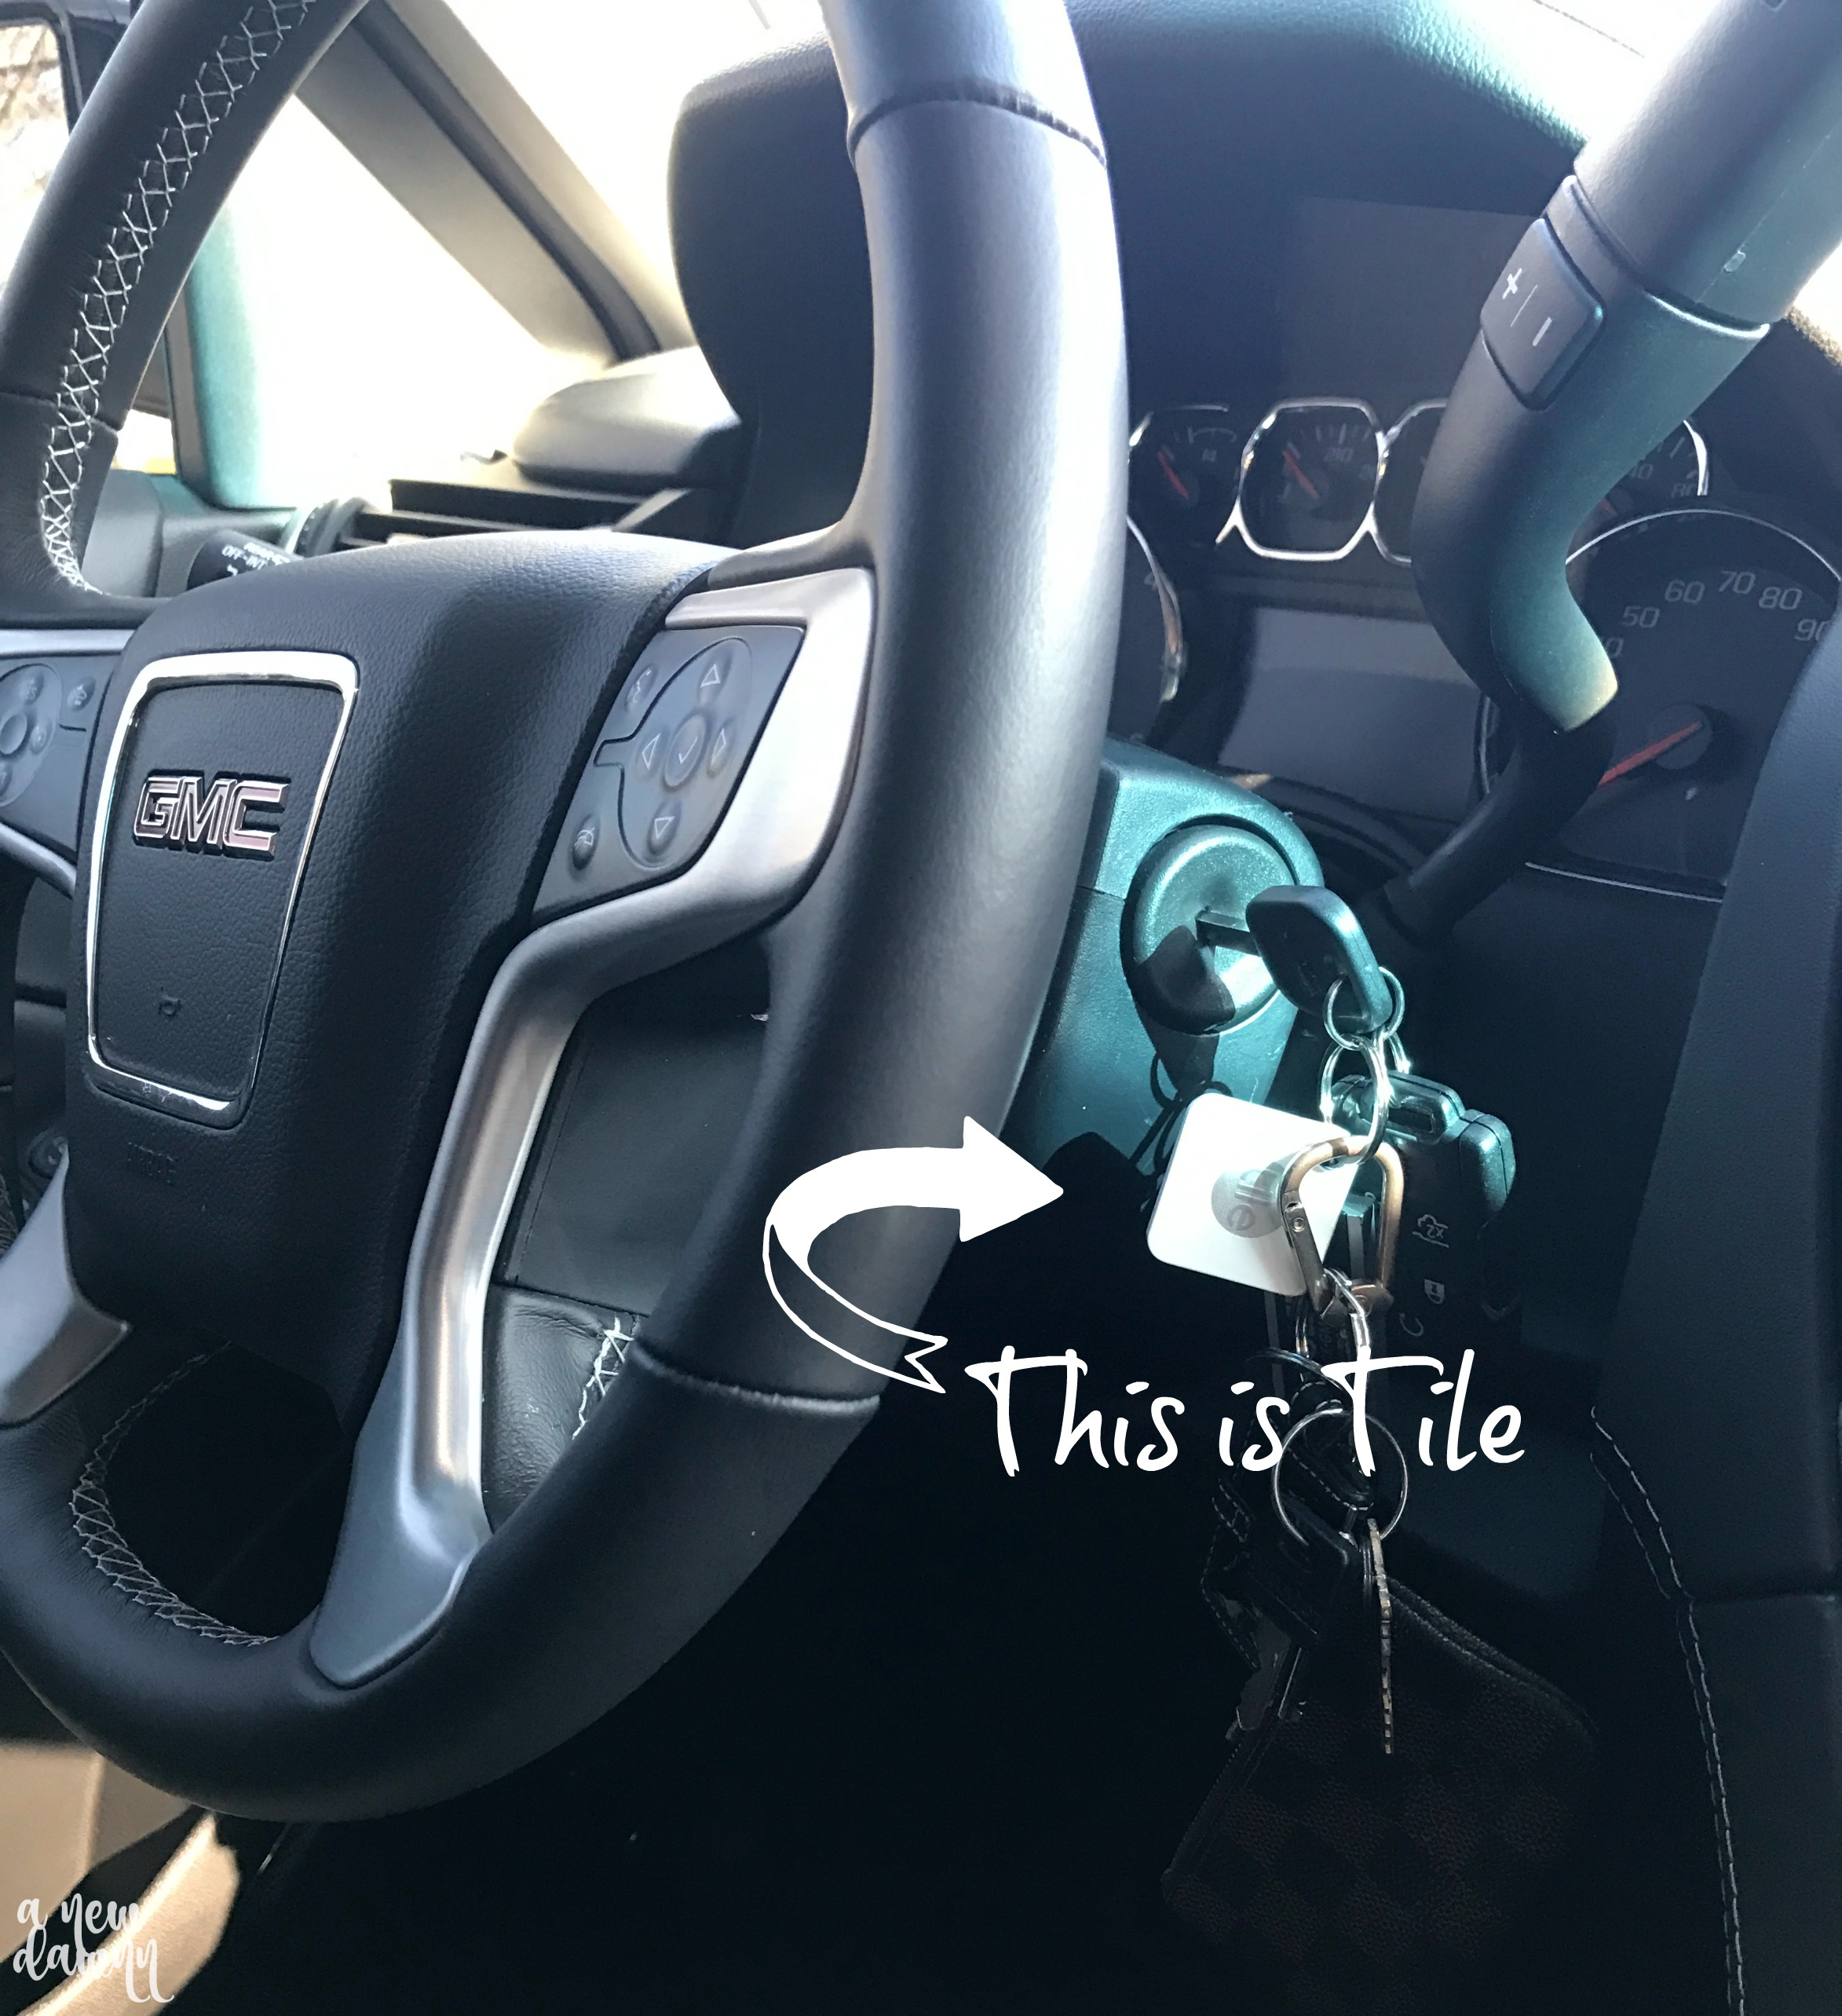 Tile Bluetooth Tracking Device - Never Lose Your Keys Again